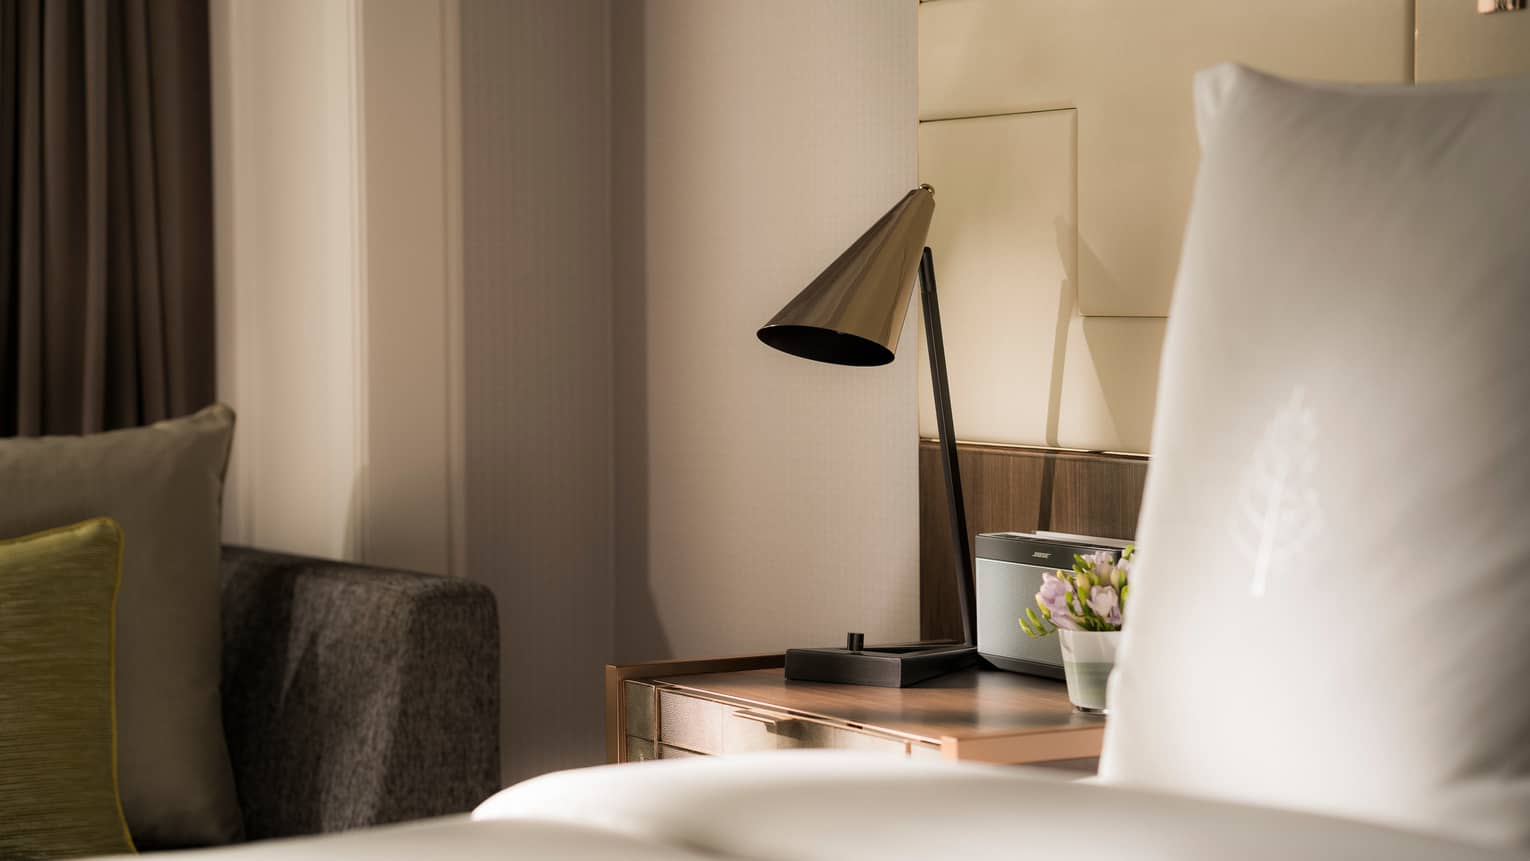 Modern silver lamp on nightstand beside alarm clock, bed